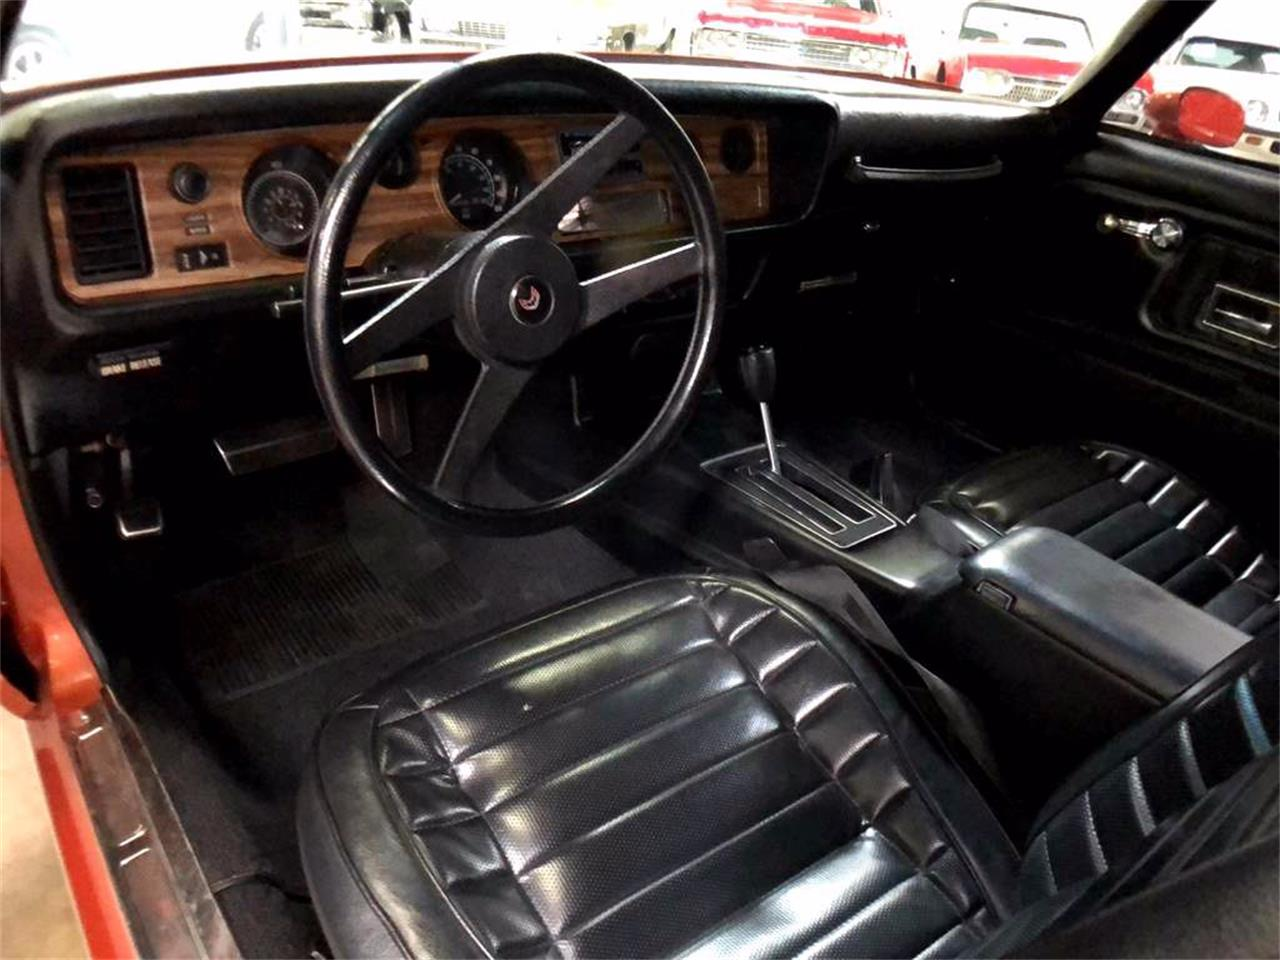 1972 Pontiac Firebird for sale in Gurnee, IL – photo 73